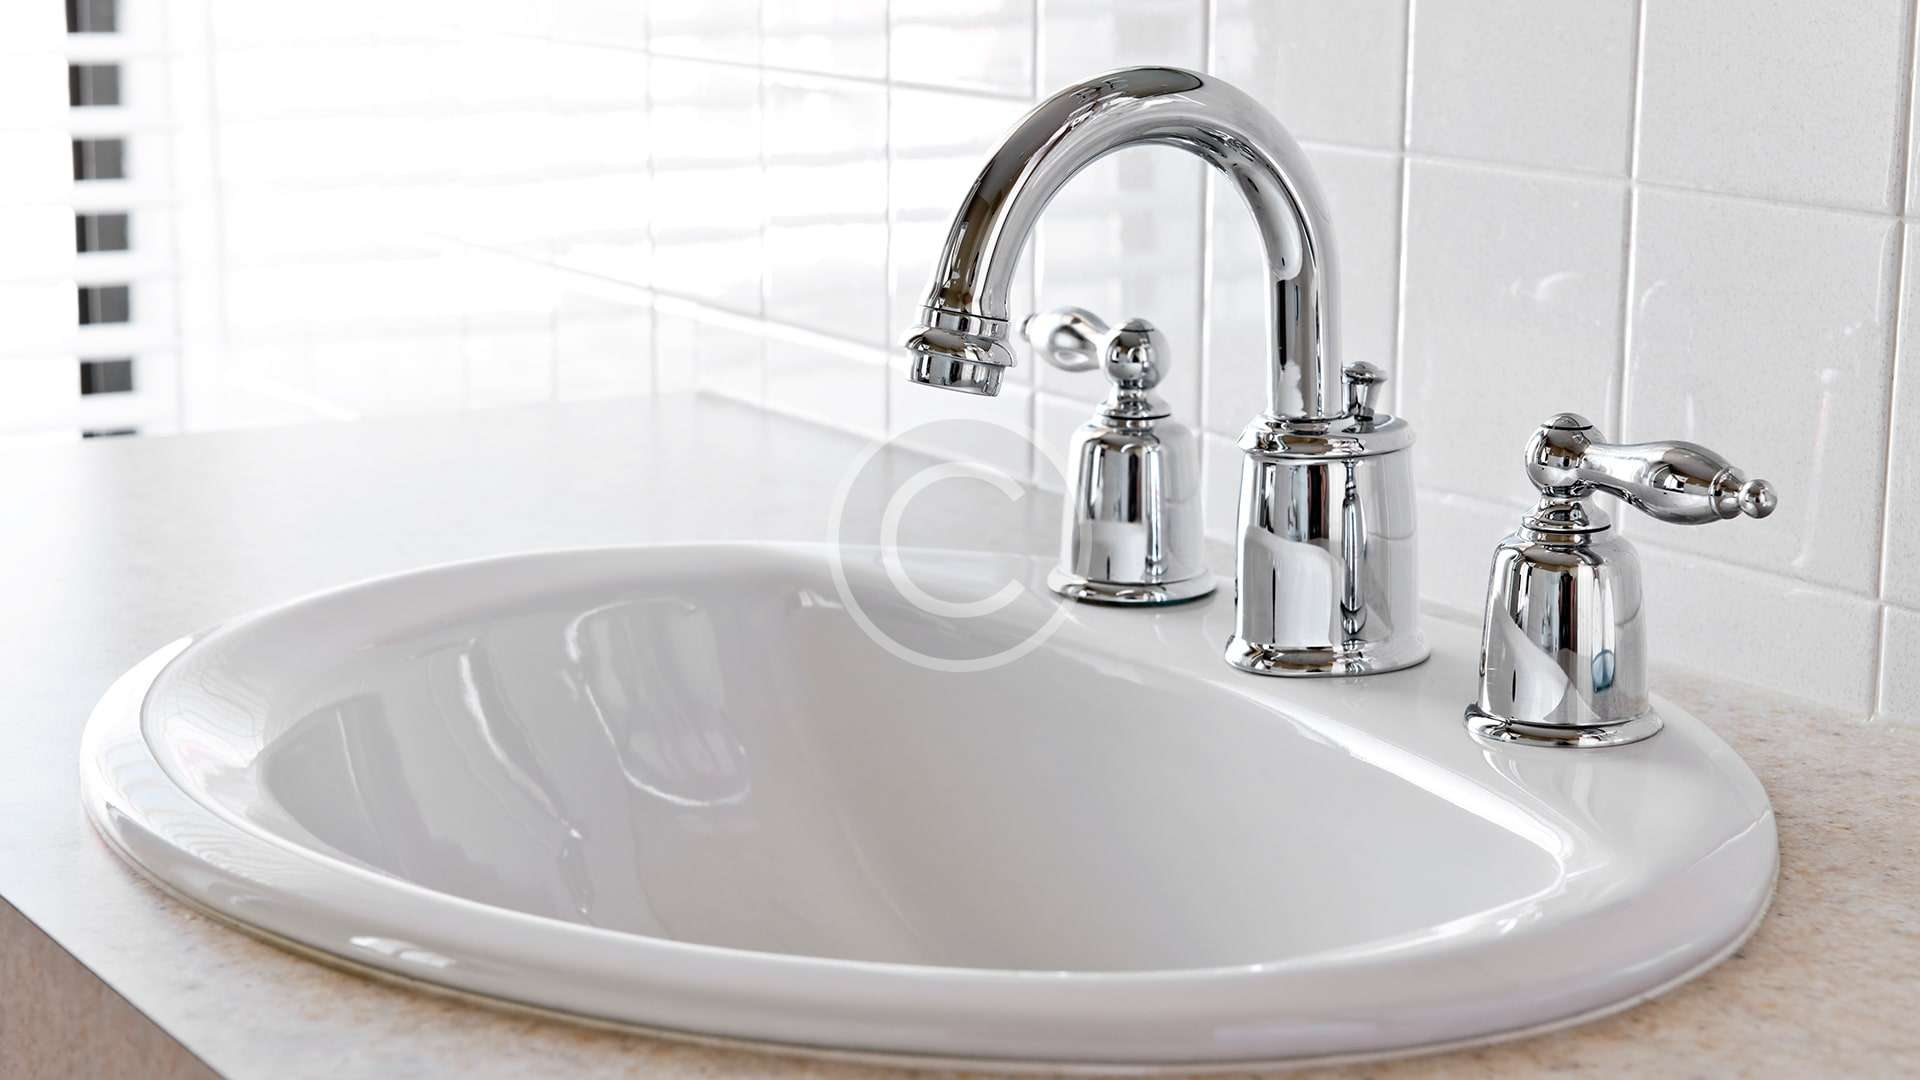 Faucet Mounted Water Filter Installation